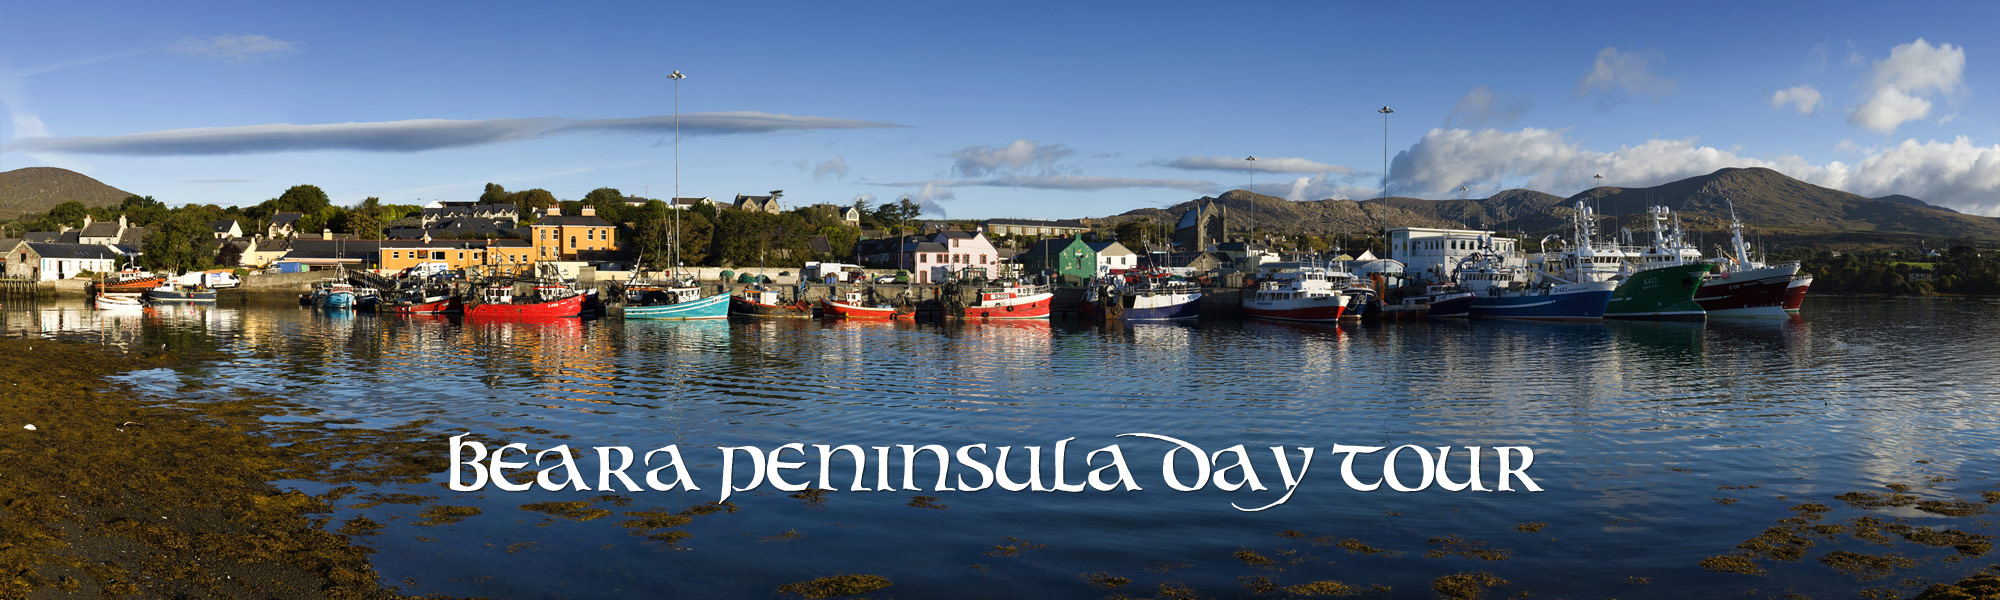 Beara Peninsula day tour